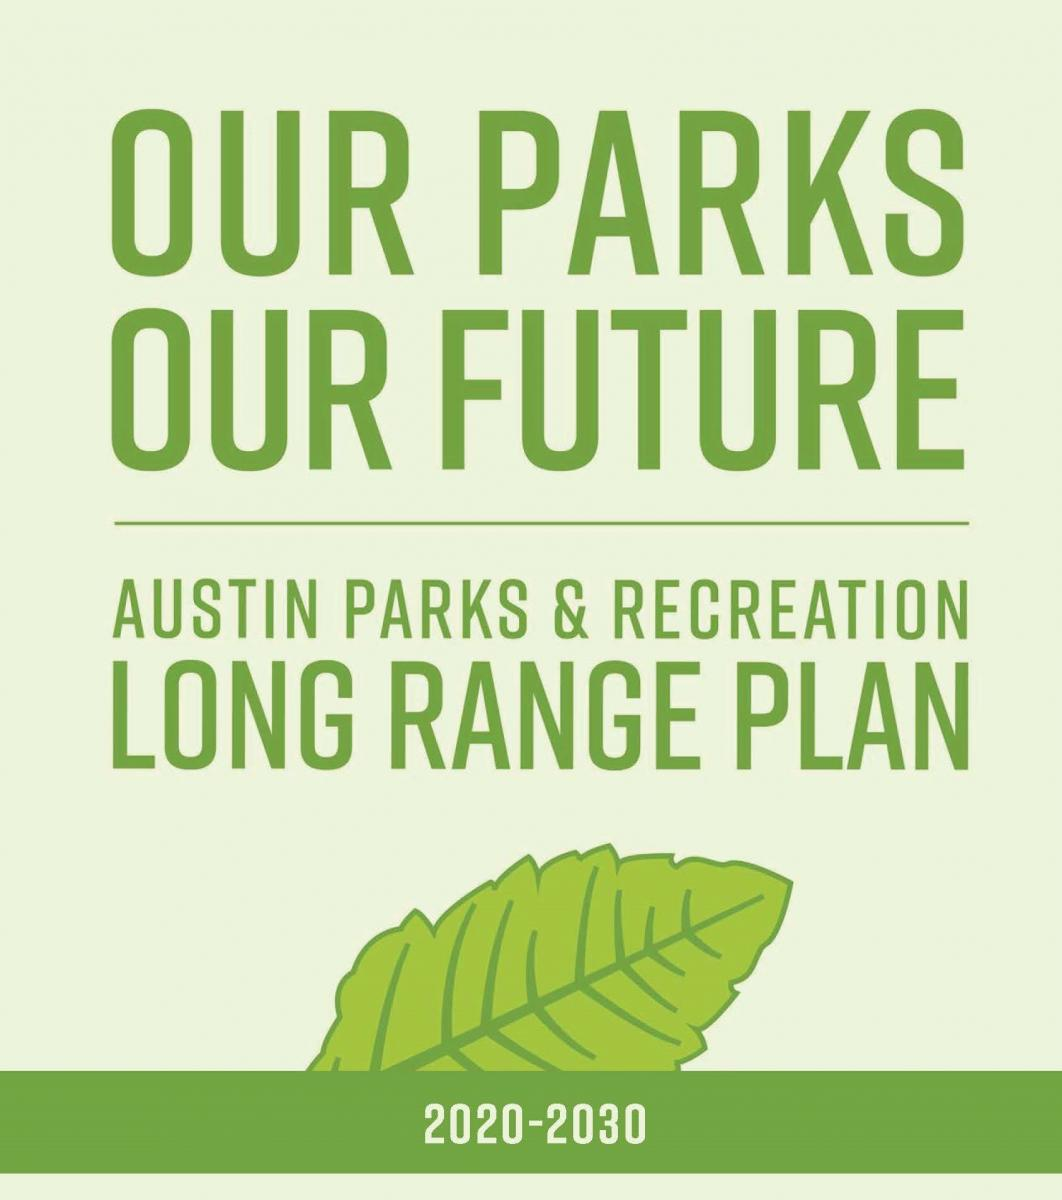 Our Parks, Our Future: Long Range Plan 2020-2030